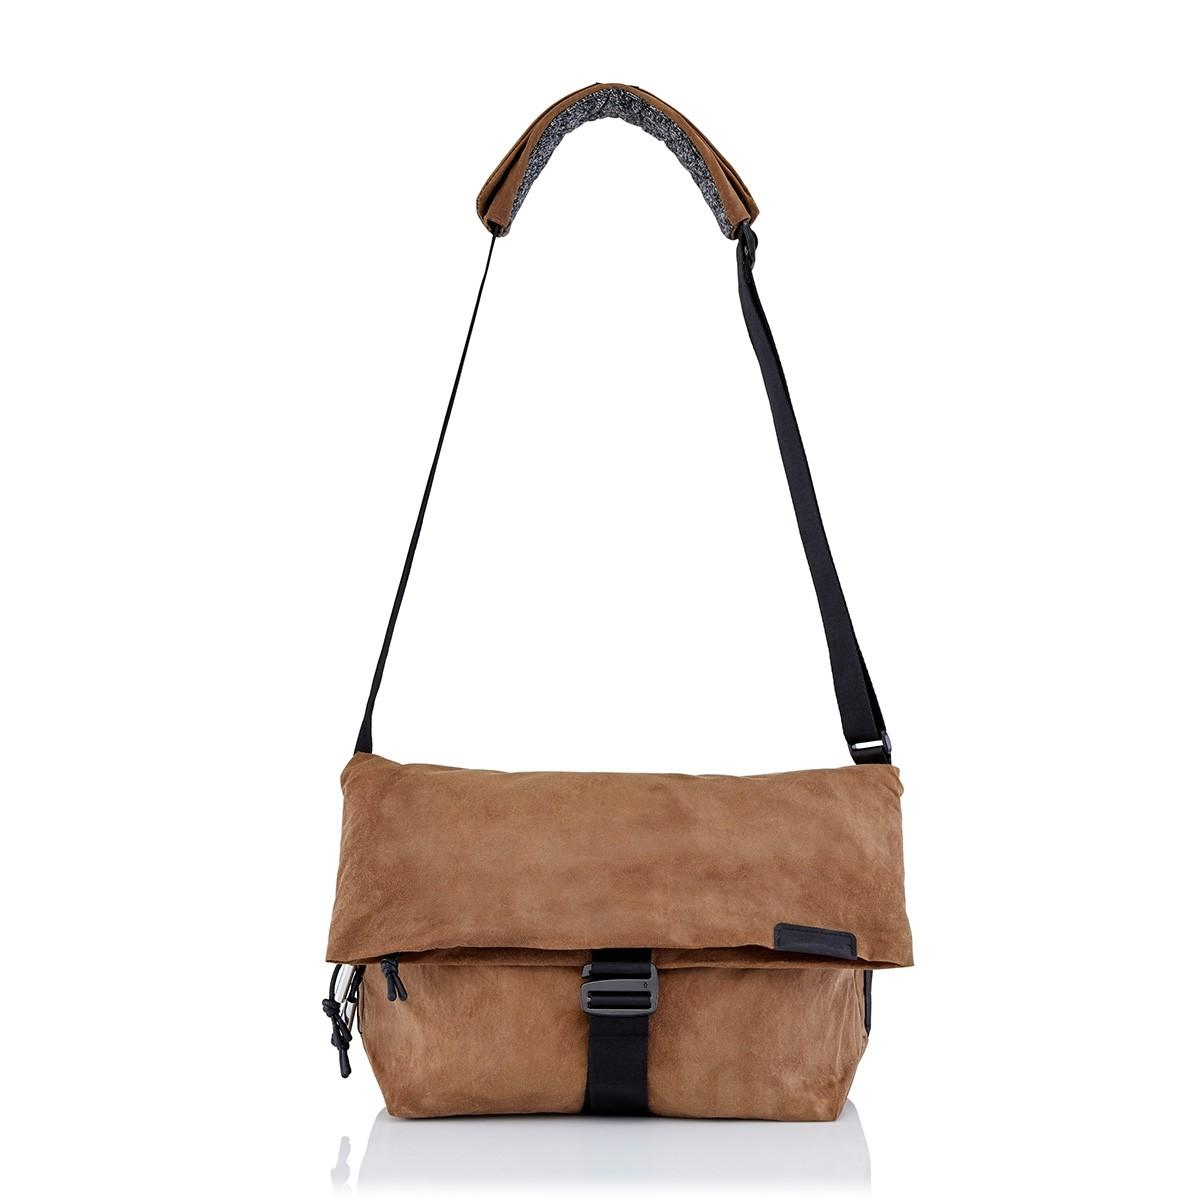 CRUMPLER - SHAPE OF CHARACTER (WAXED CANVAS)